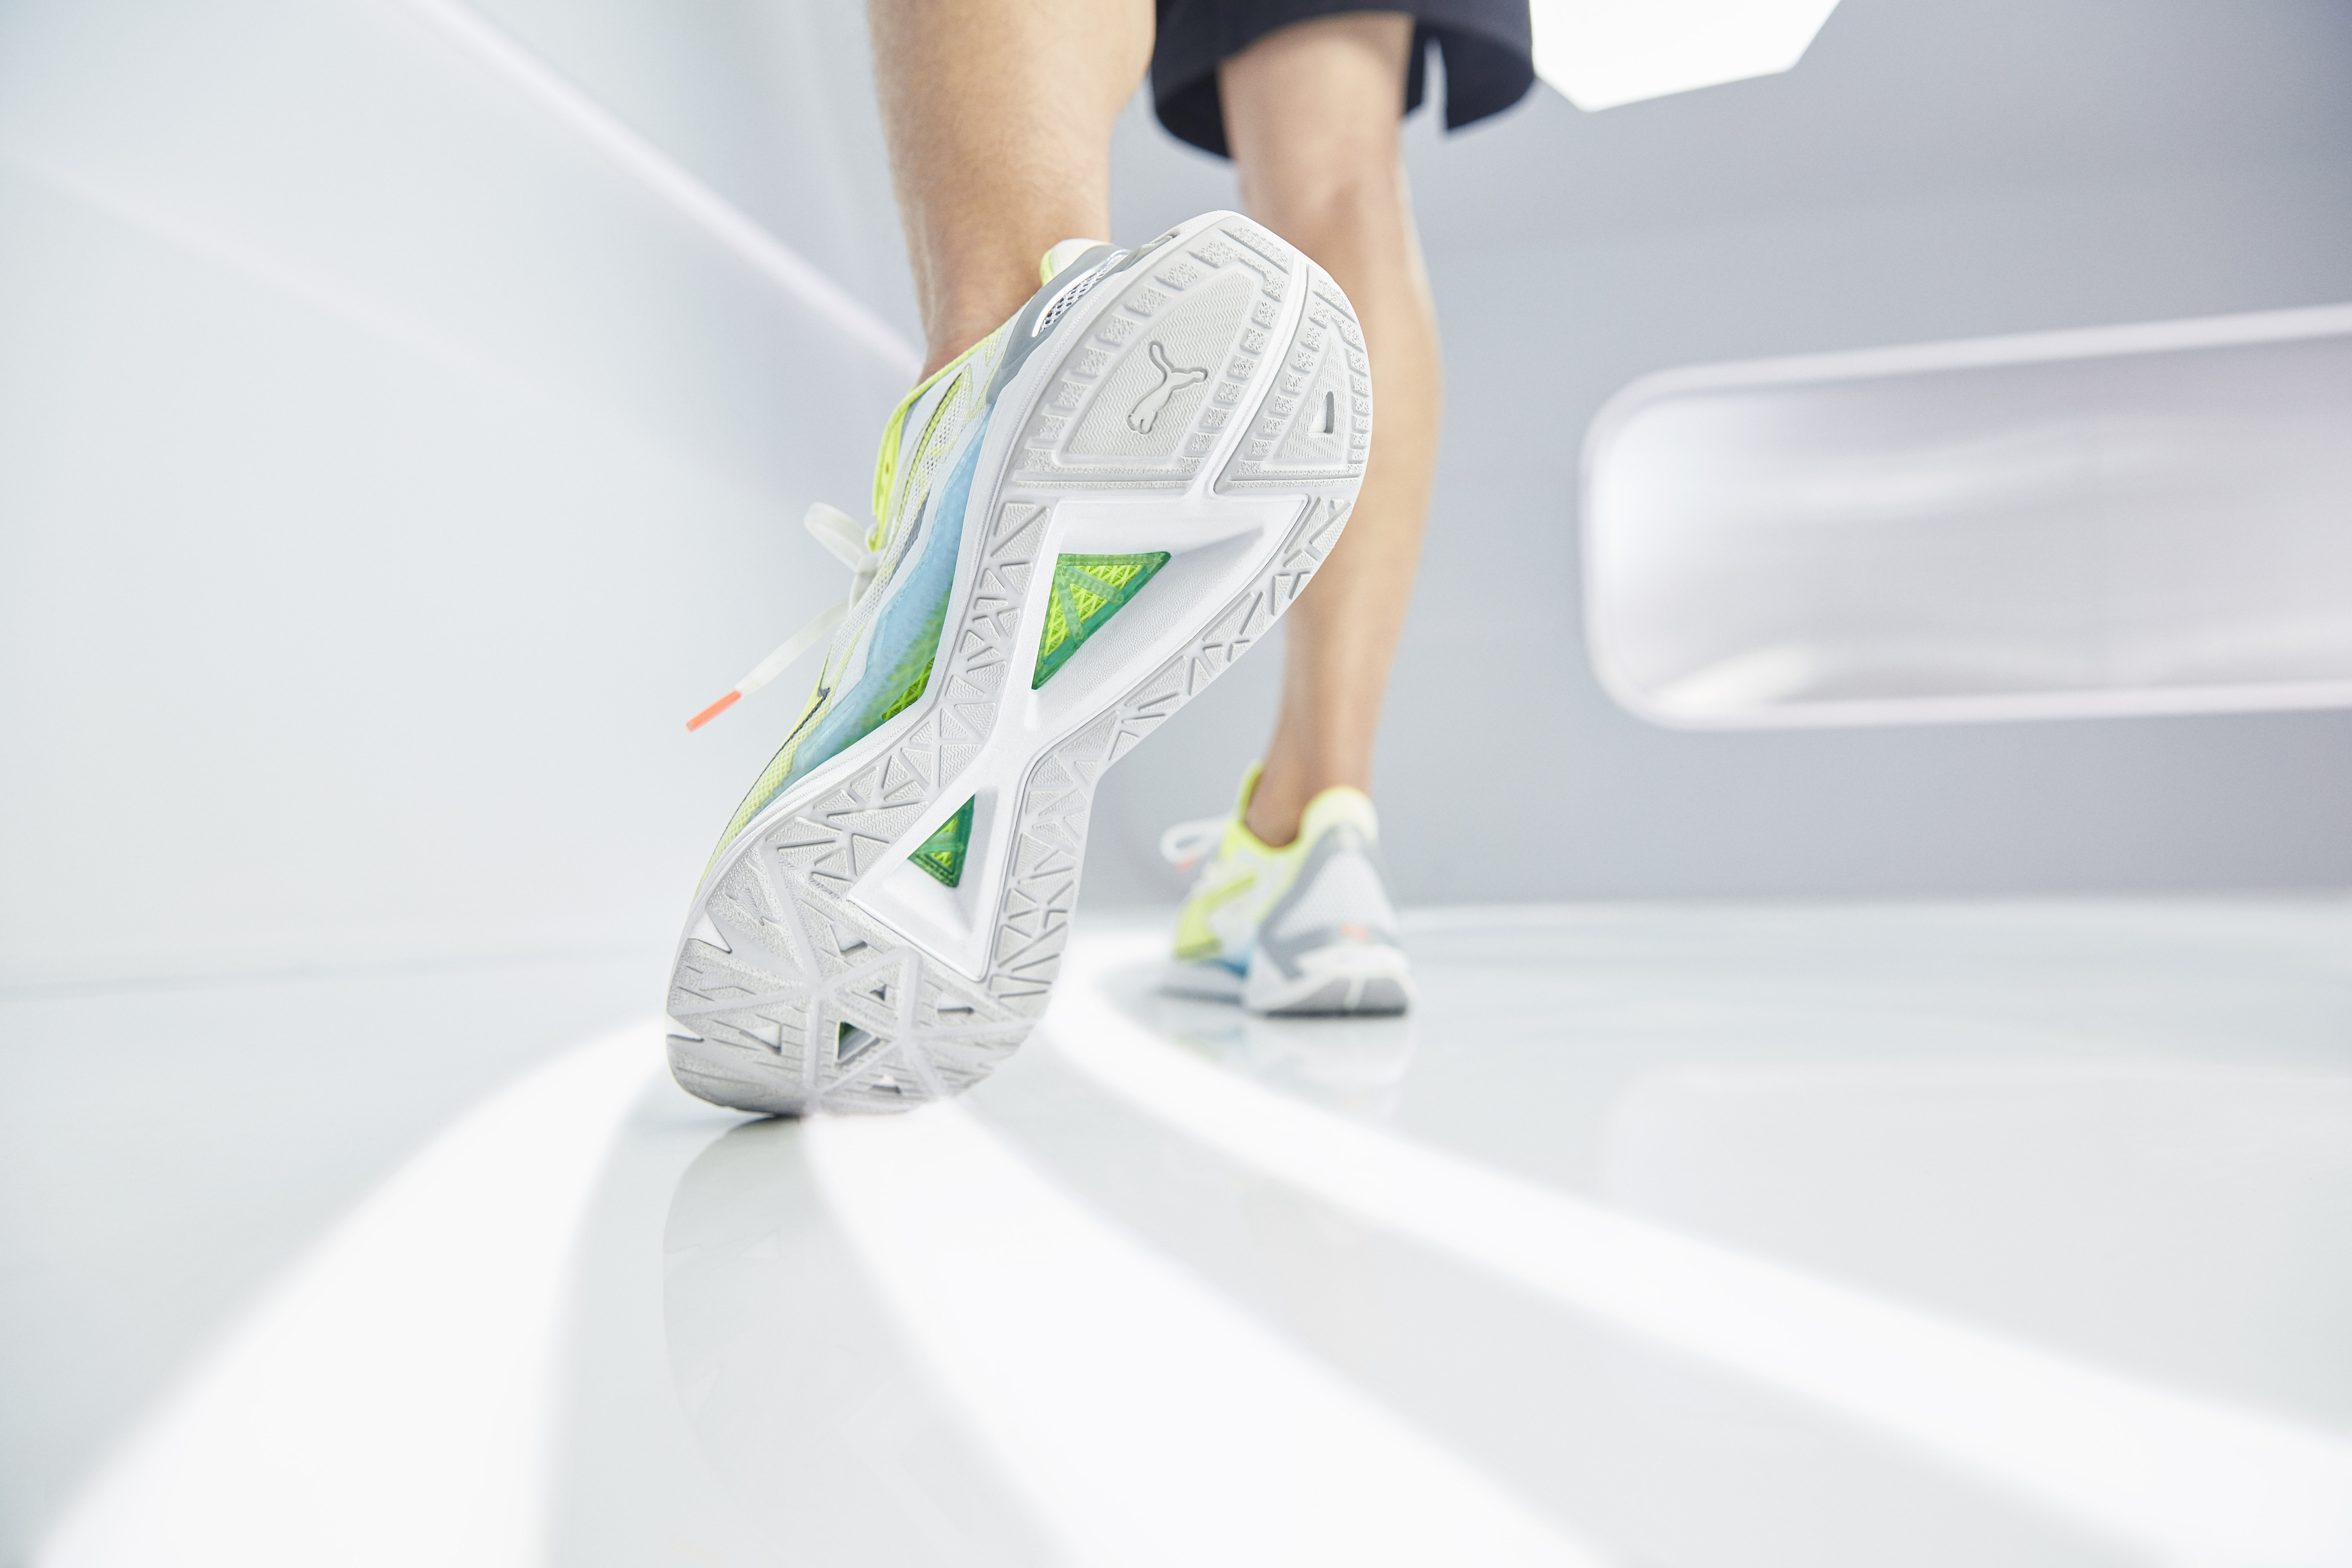 PUMA_AW20_Q3ULTRARIDE_PRODUCT_0147_LOW-RES_FINAL.jpg